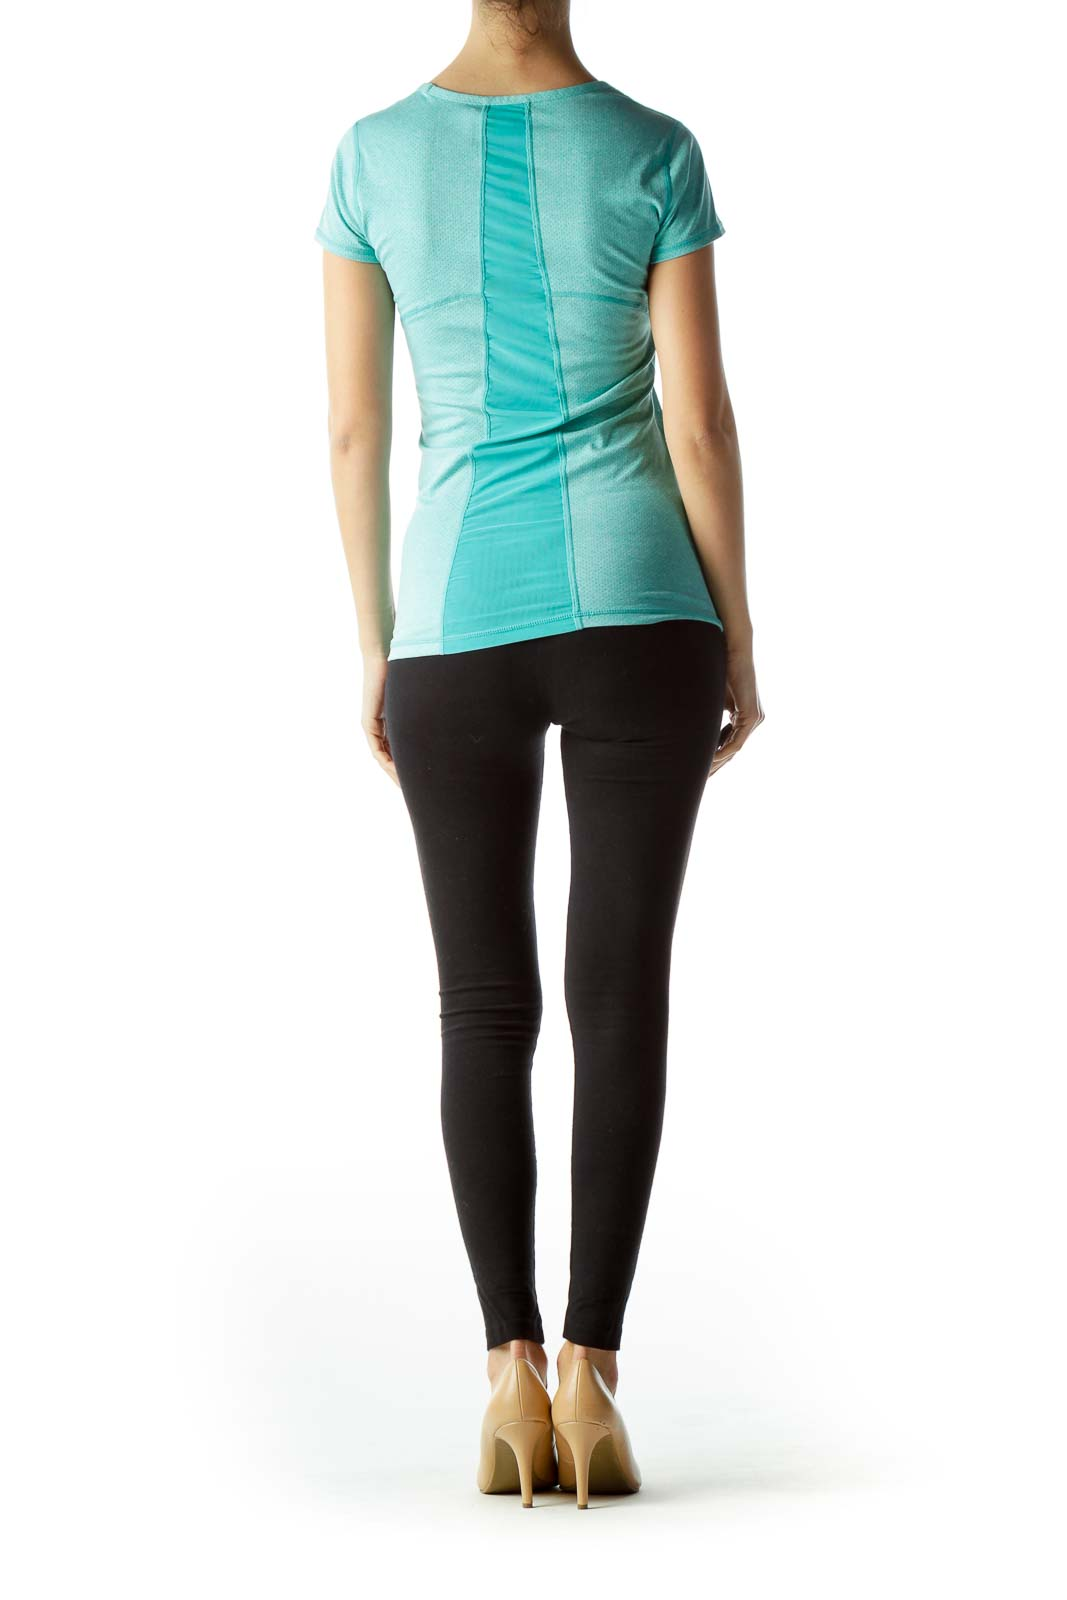 Teal Blue Short Sleeve Stretchy Sports Top